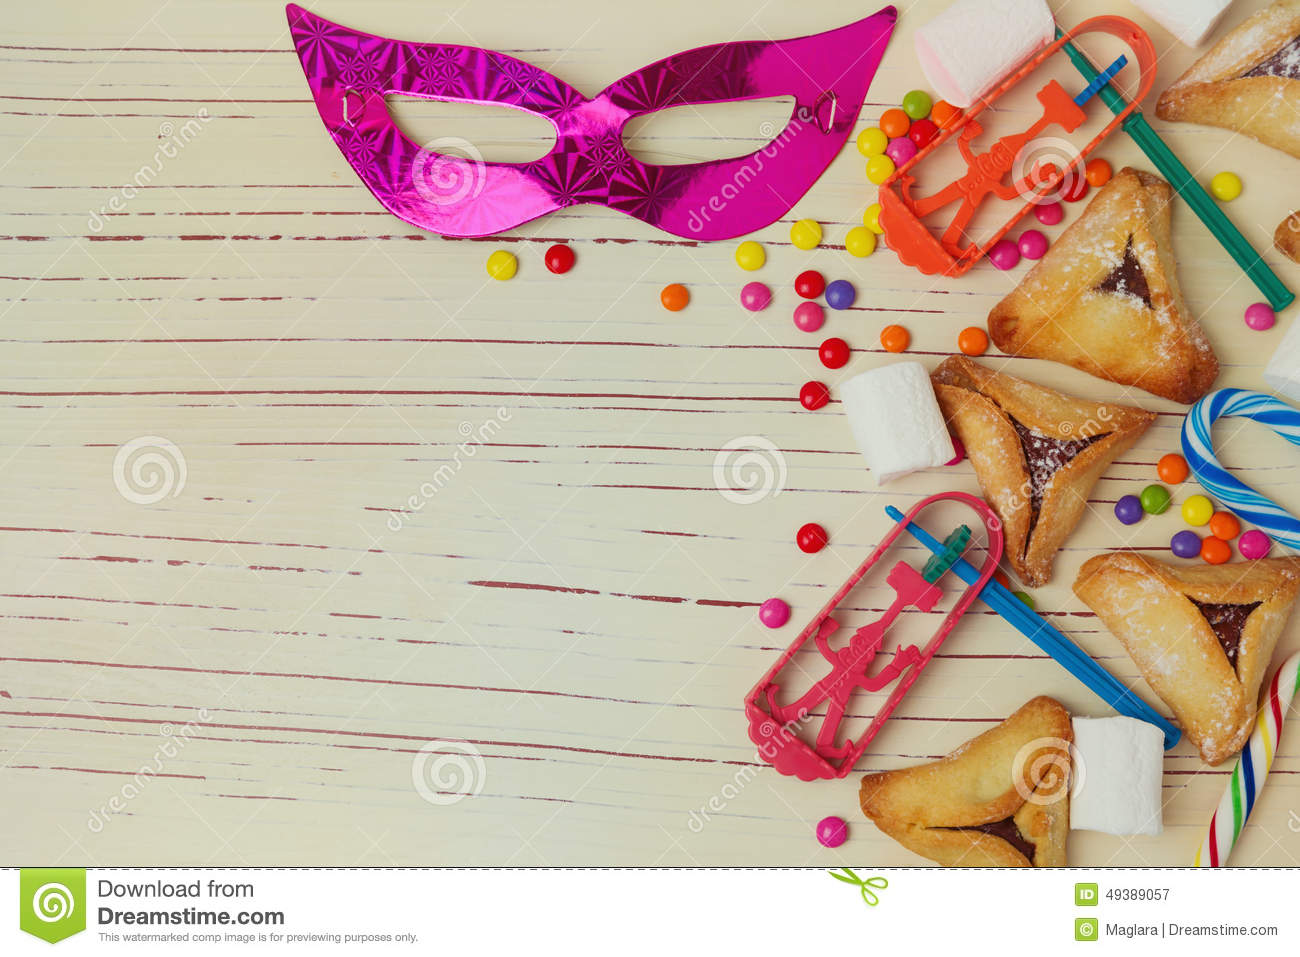 Background For Jewish Holiday Purim With Mask And Hamantaschen Cookies ...